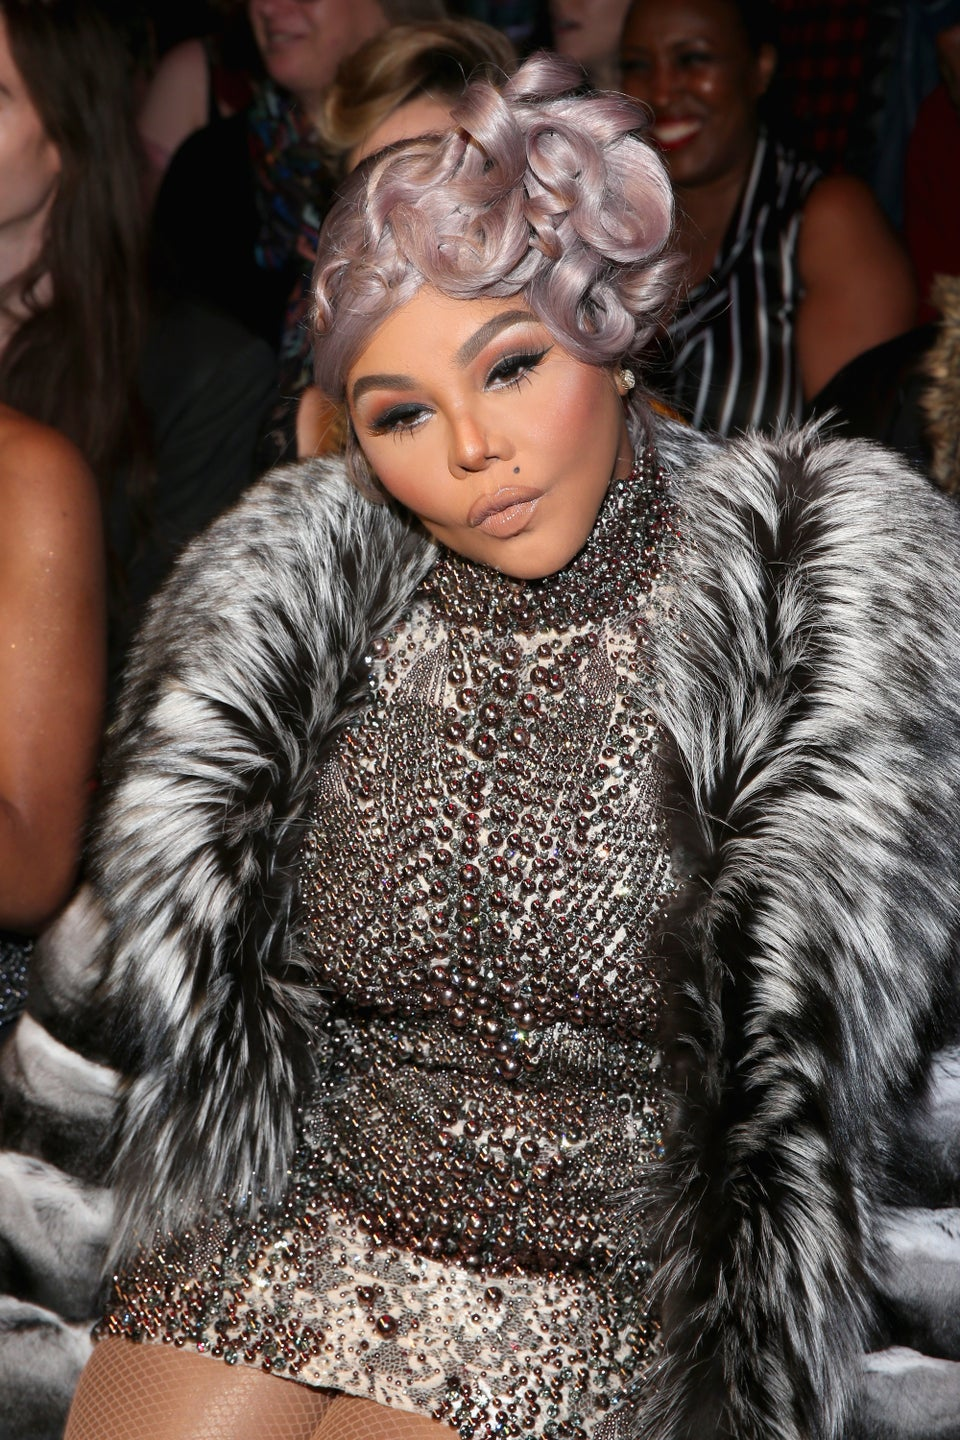 Lil Kim Fans Are Not Happy Rapper Maino Interrupted Her Big Day